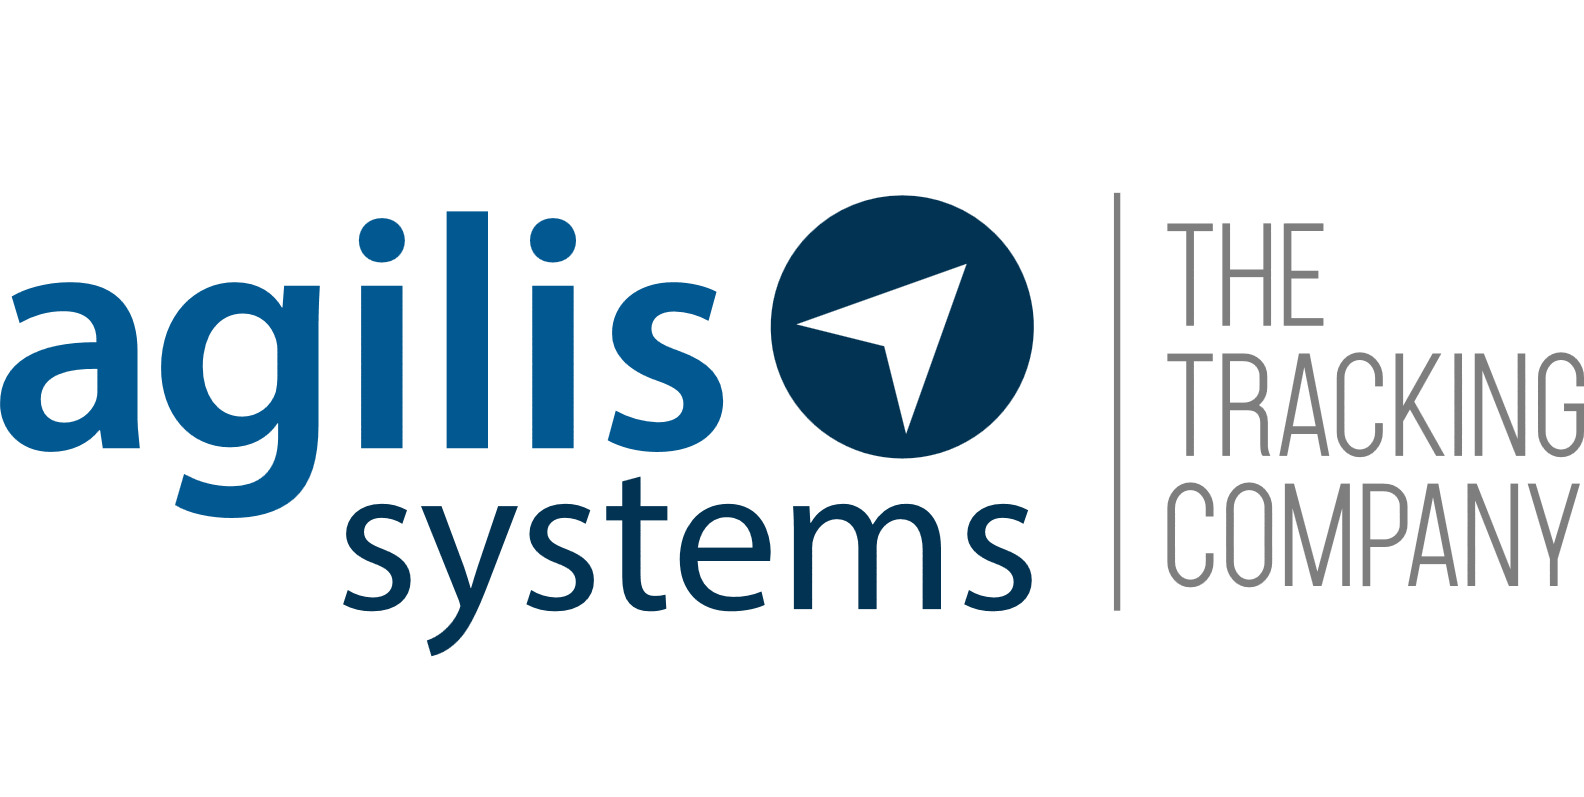 Agilis Systems Receives Growth Investment From Spectrum Equity